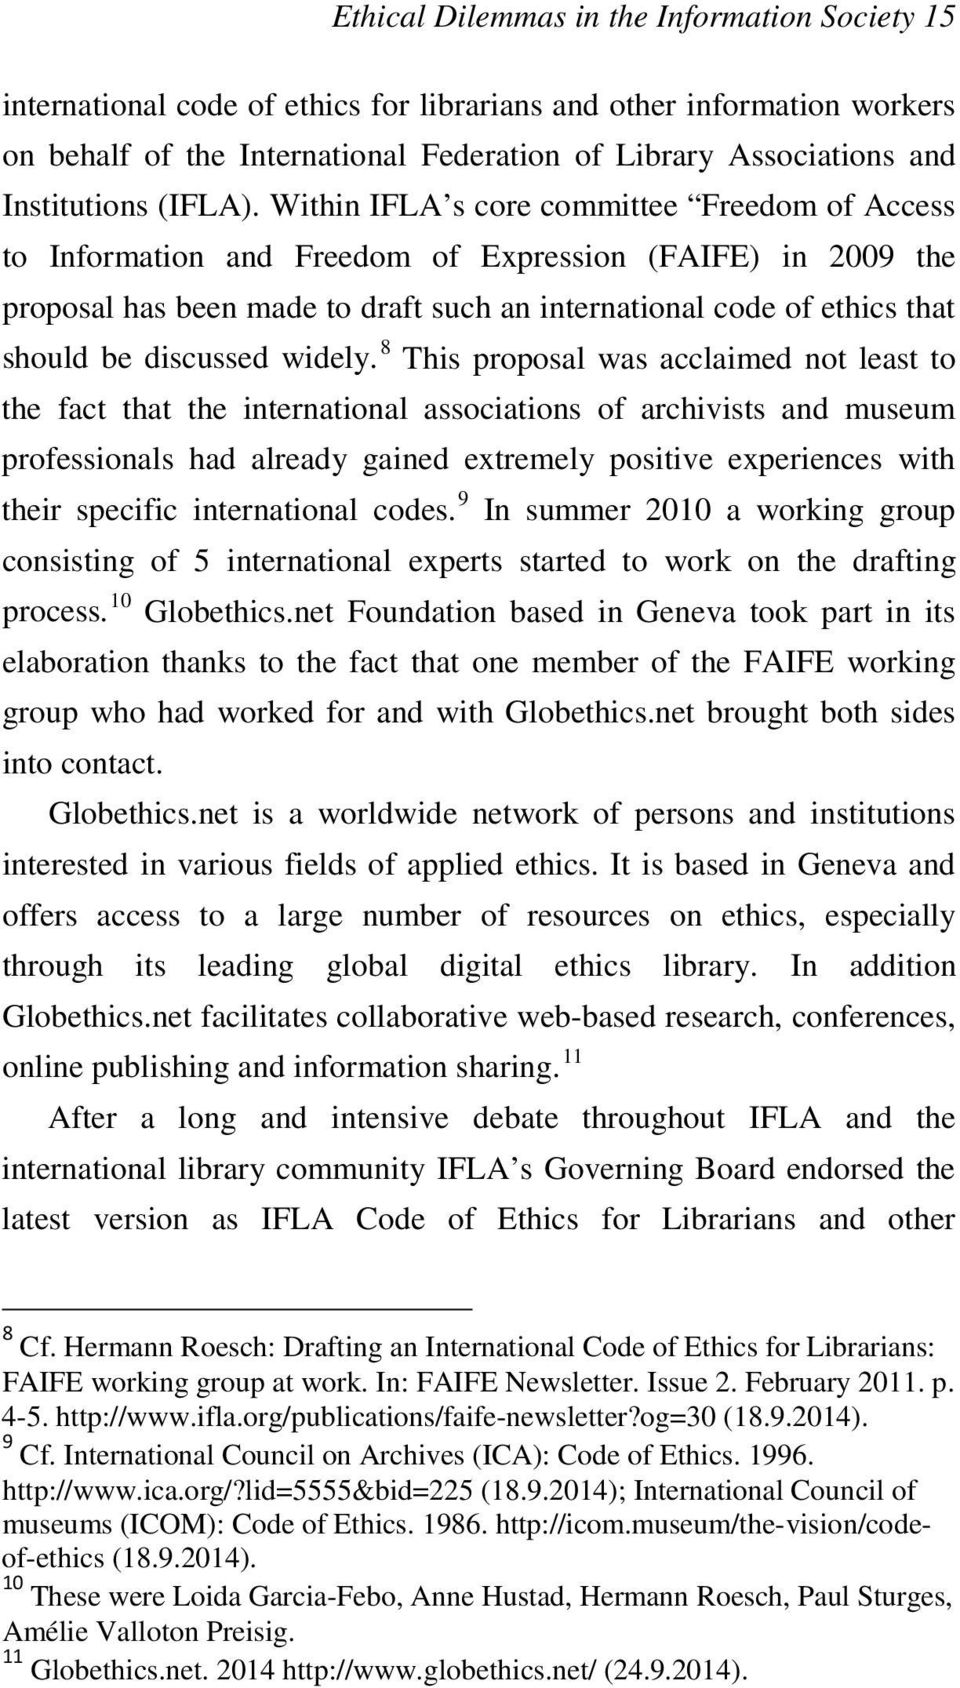 Within IFLA s core committee Freedom of Access to Information and Freedom of Expression (FAIFE) in 2009 the proposal has been made to draft such an international code of ethics that should be